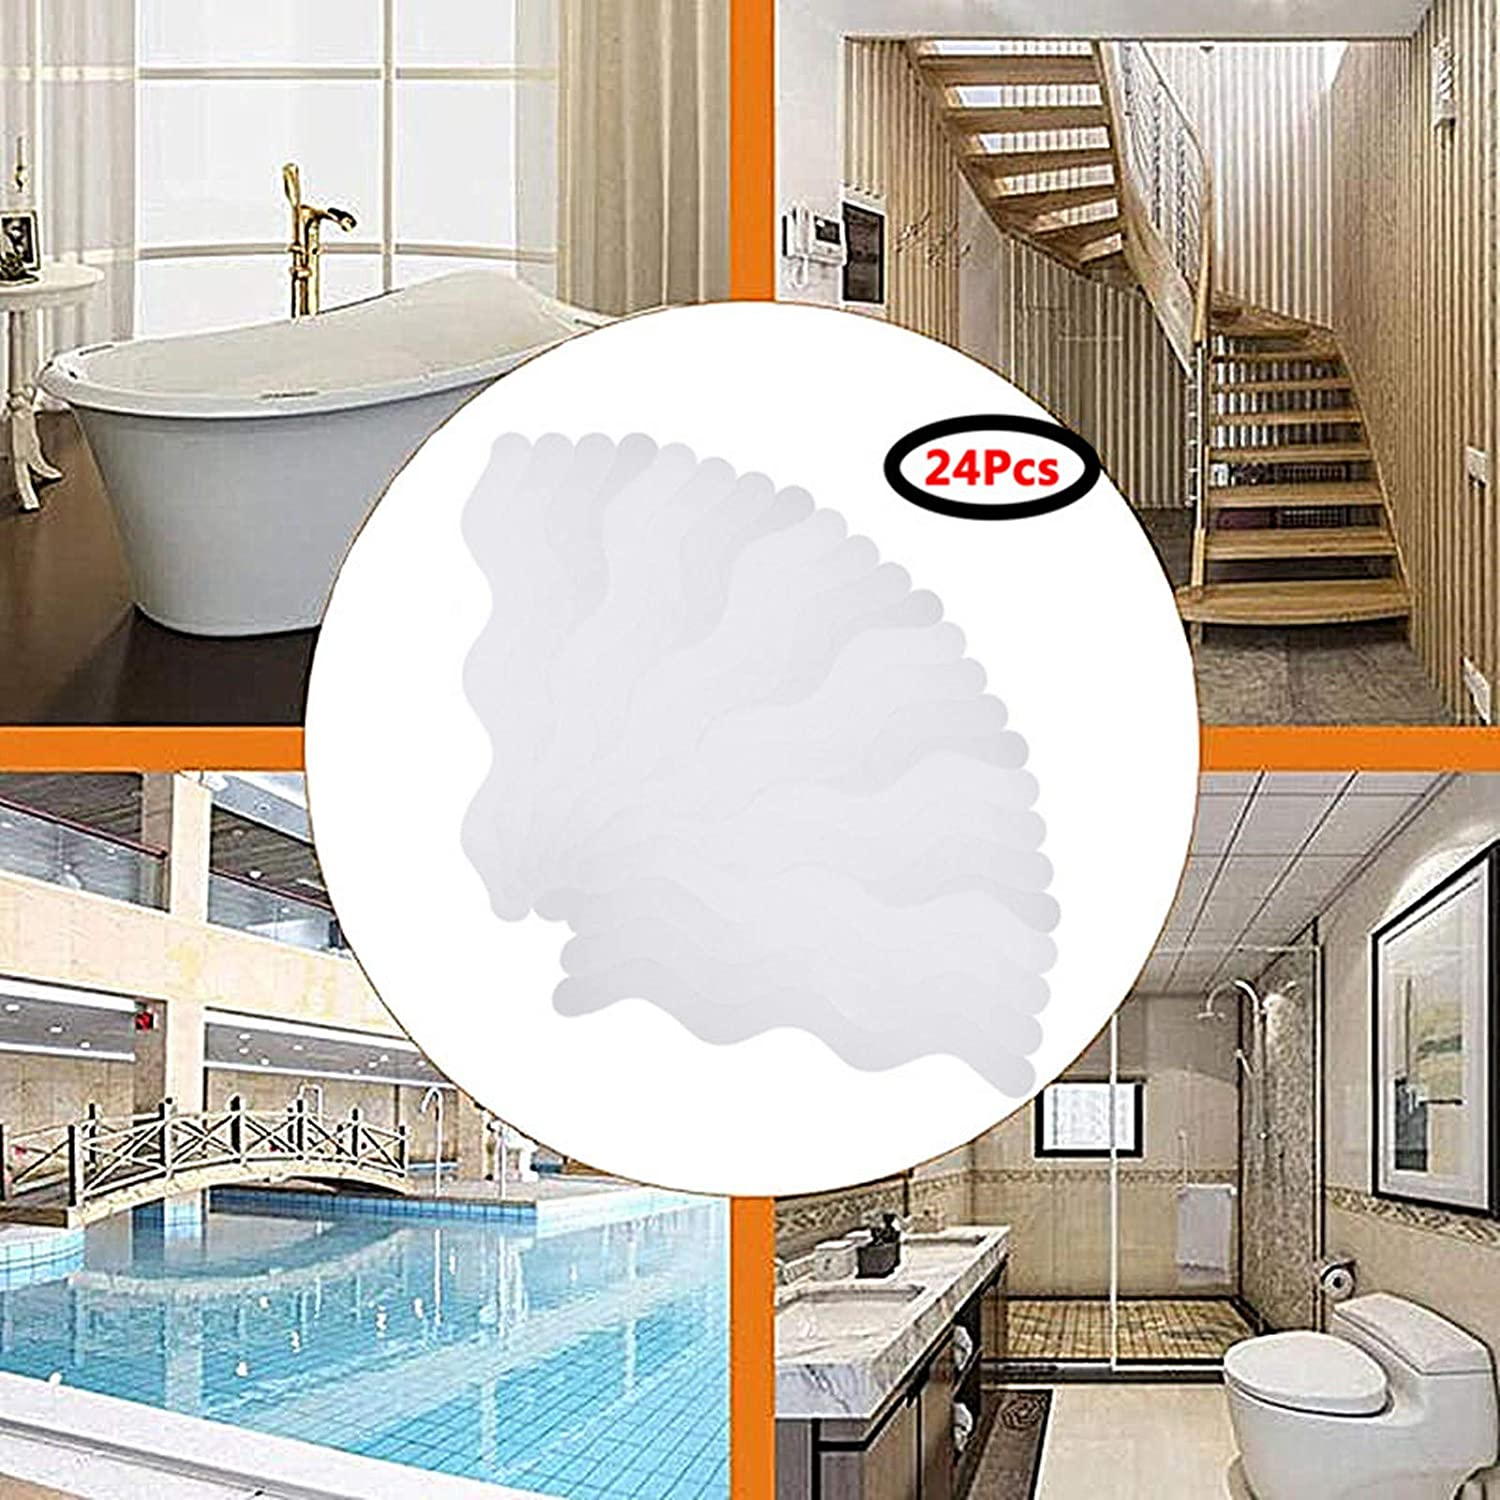 YUKAKI Bathtub Stickers Gravel Texture Transparent Bath Tub Shower Stickers with Decals Scraper for Slippery Safety Bathroom Tubs Showers Treads Room Floor Stairs 36 PCS Non-Slip Adhesive Strip